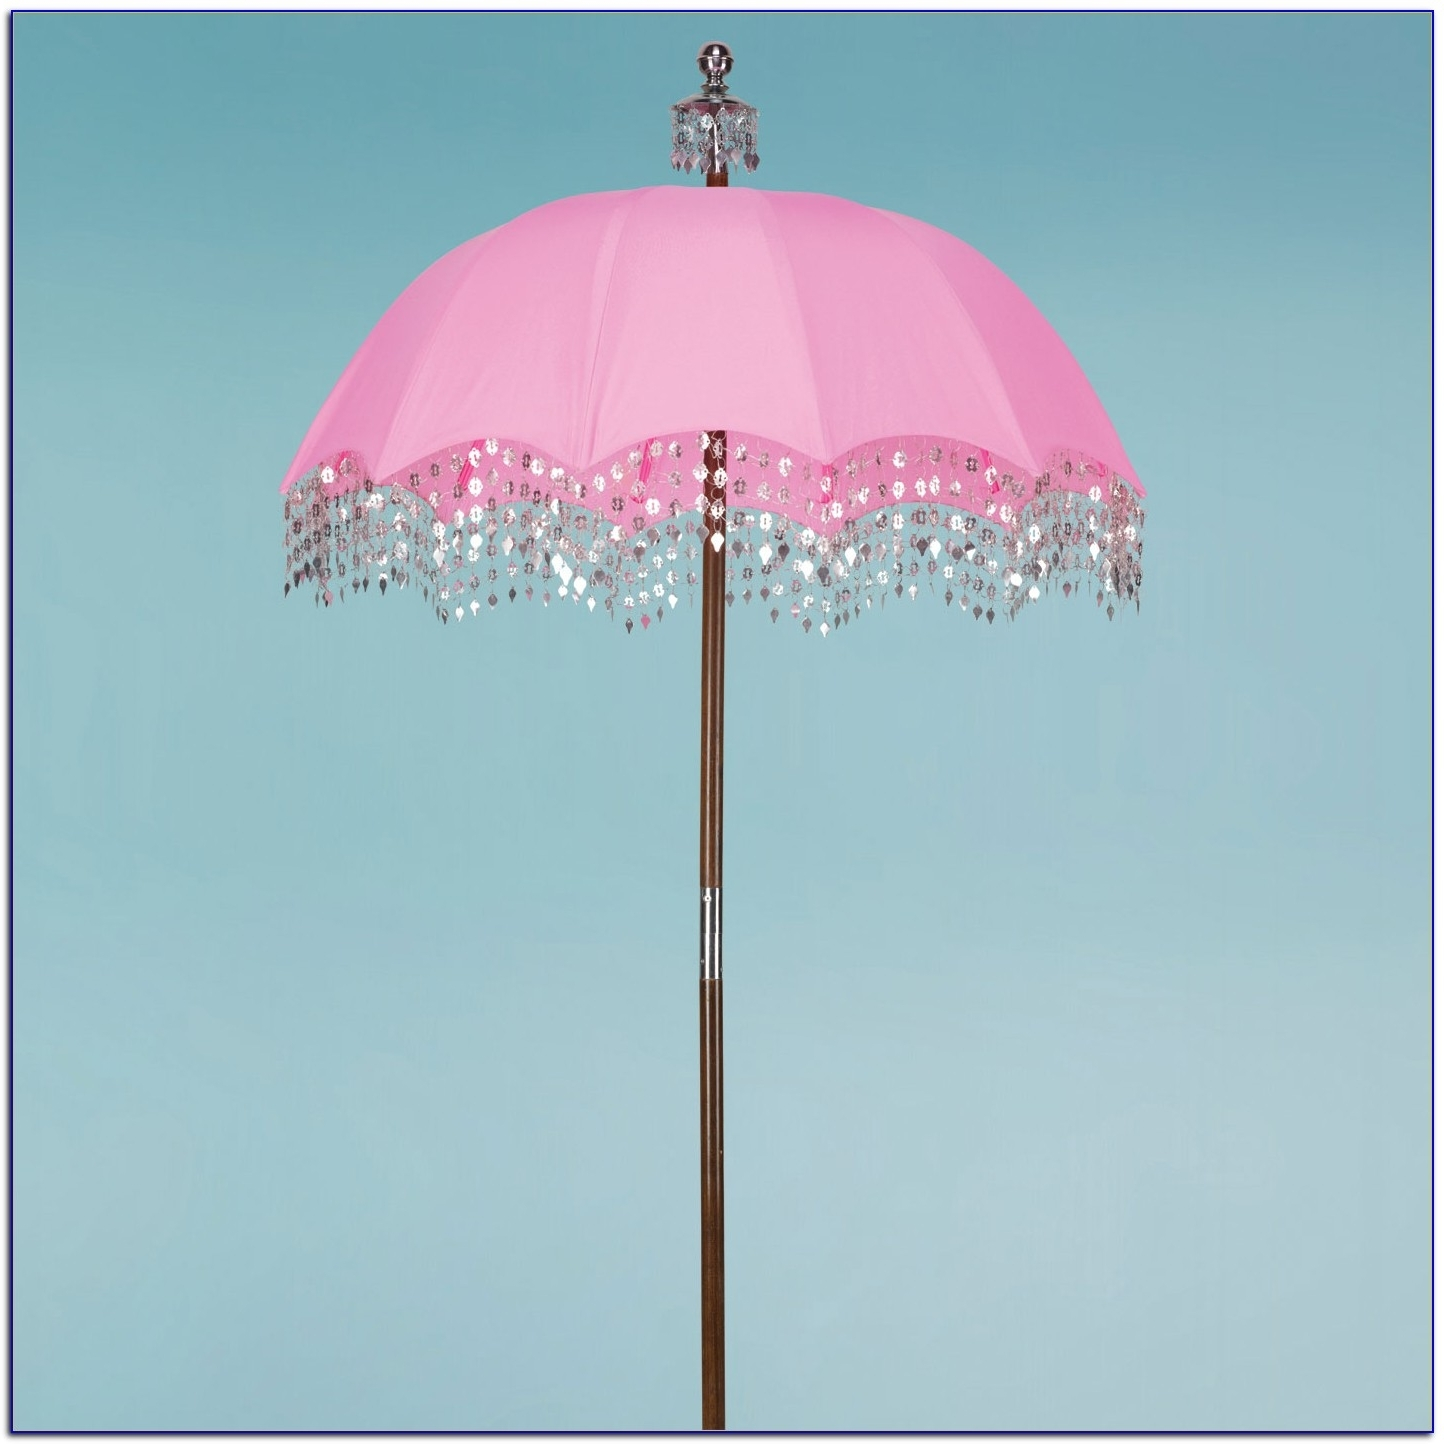 55 Pinks Patio, Pink Patio Umbrella Ebay; Ebay Patio Table Umbrella Pertaining To Most Up To Date Pink Patio Umbrellas (View 12 of 20)